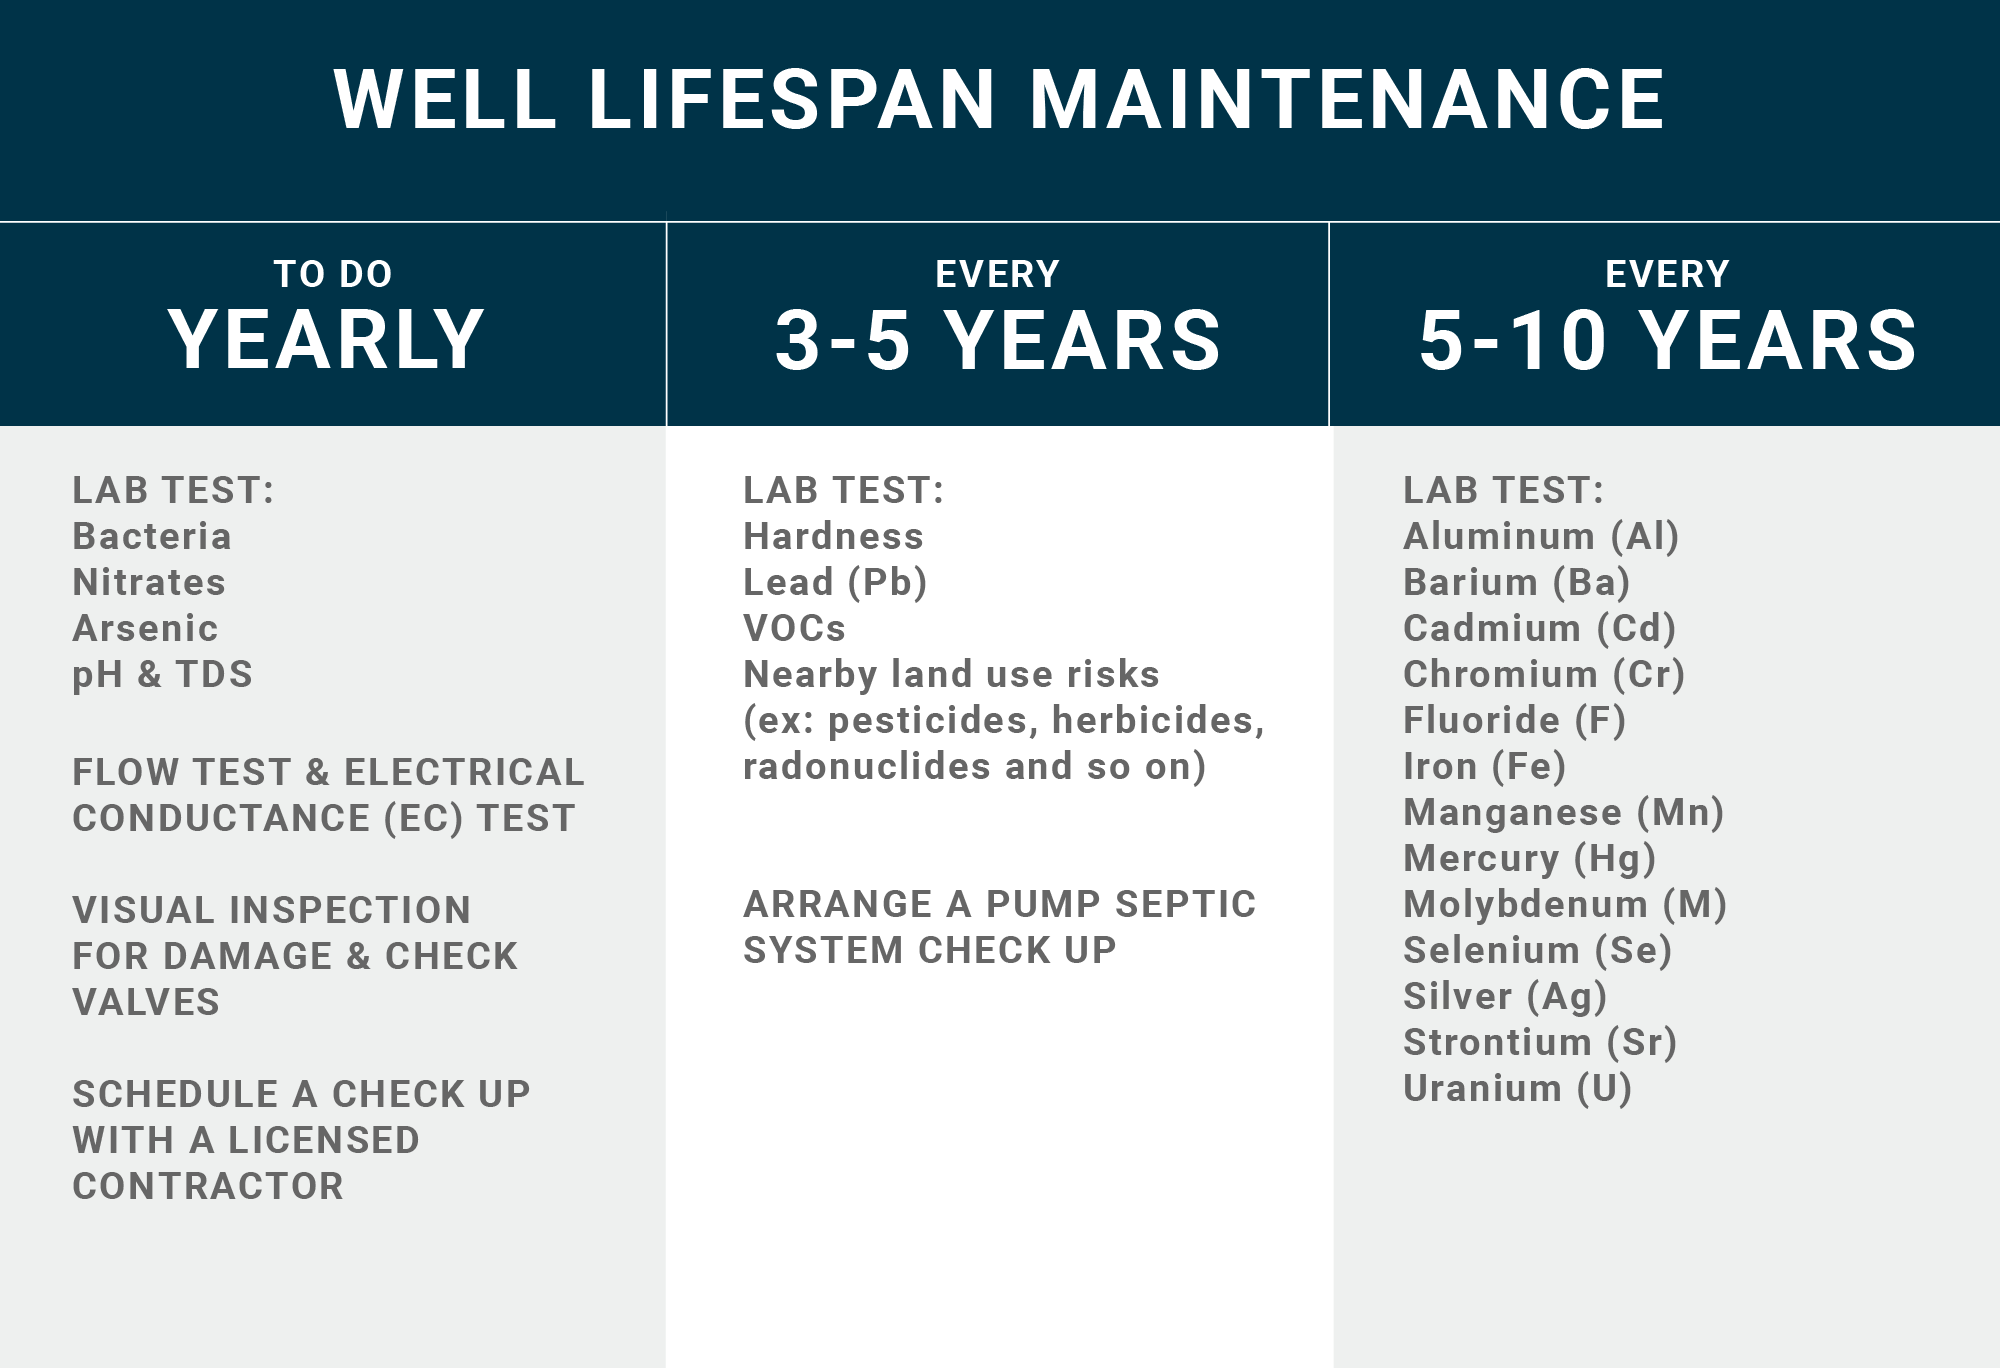 Well Life Maintenance Checklist